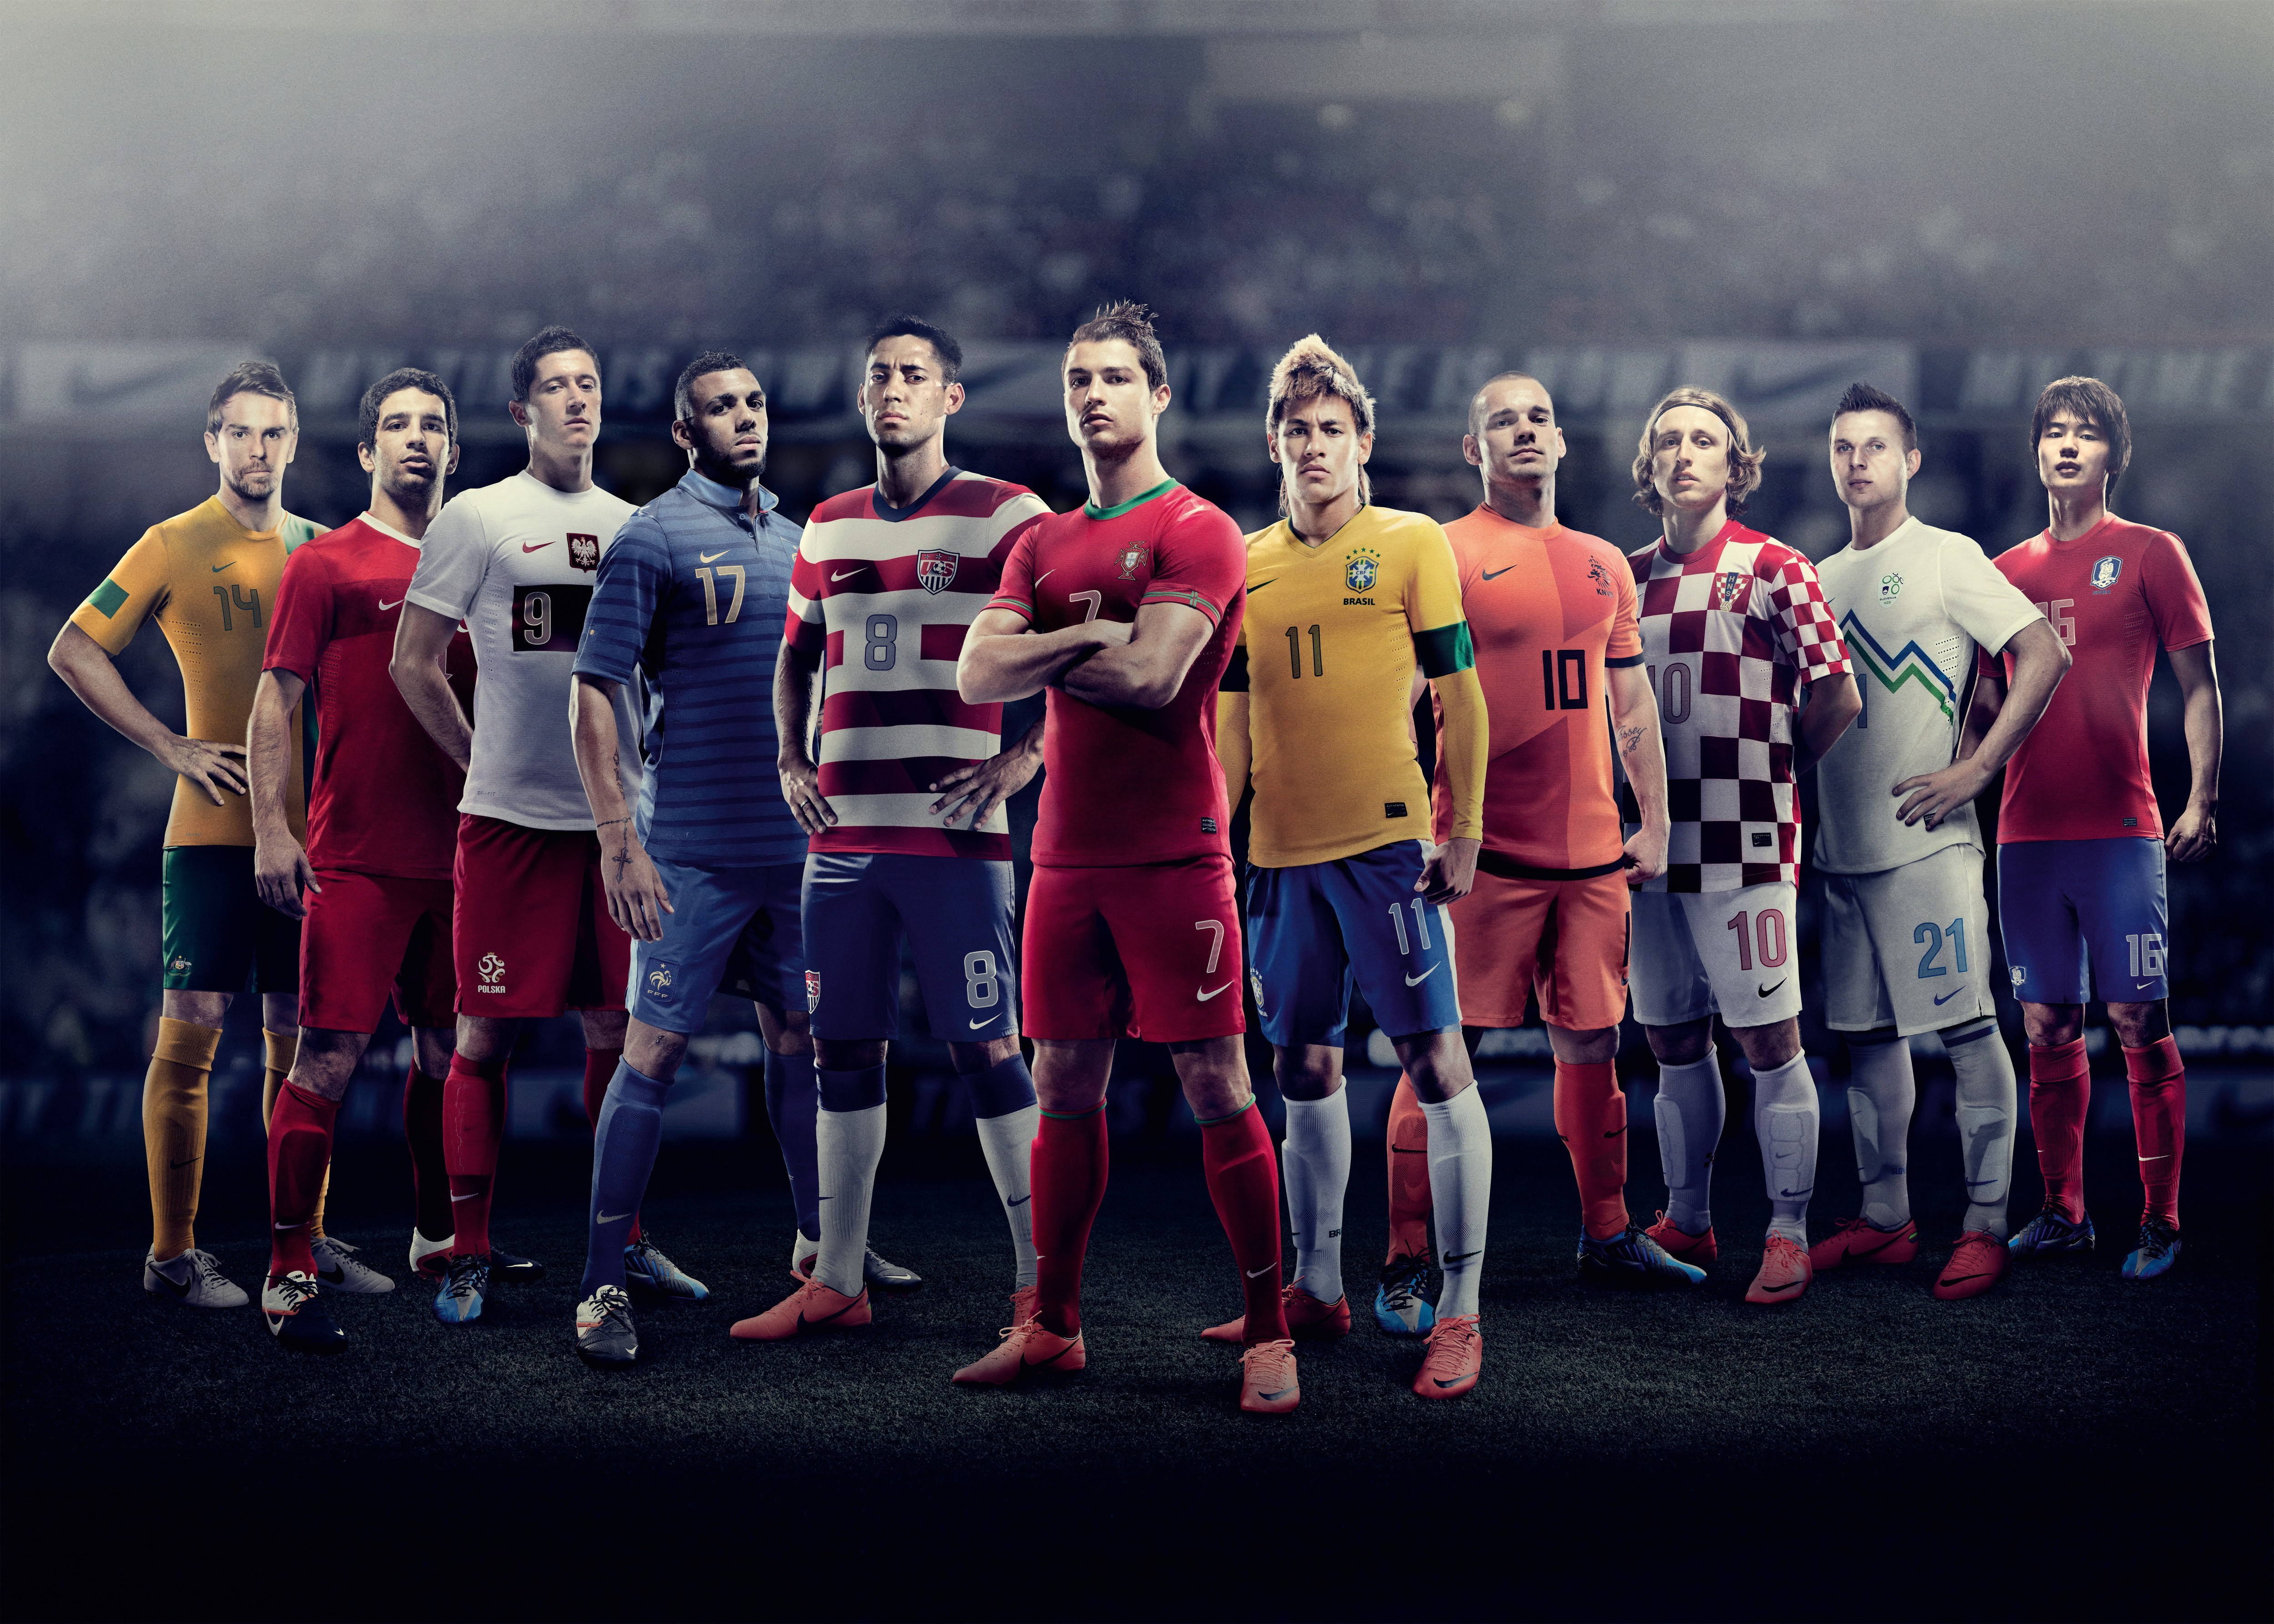 5000x3571 - Soccer Wallpapers 5